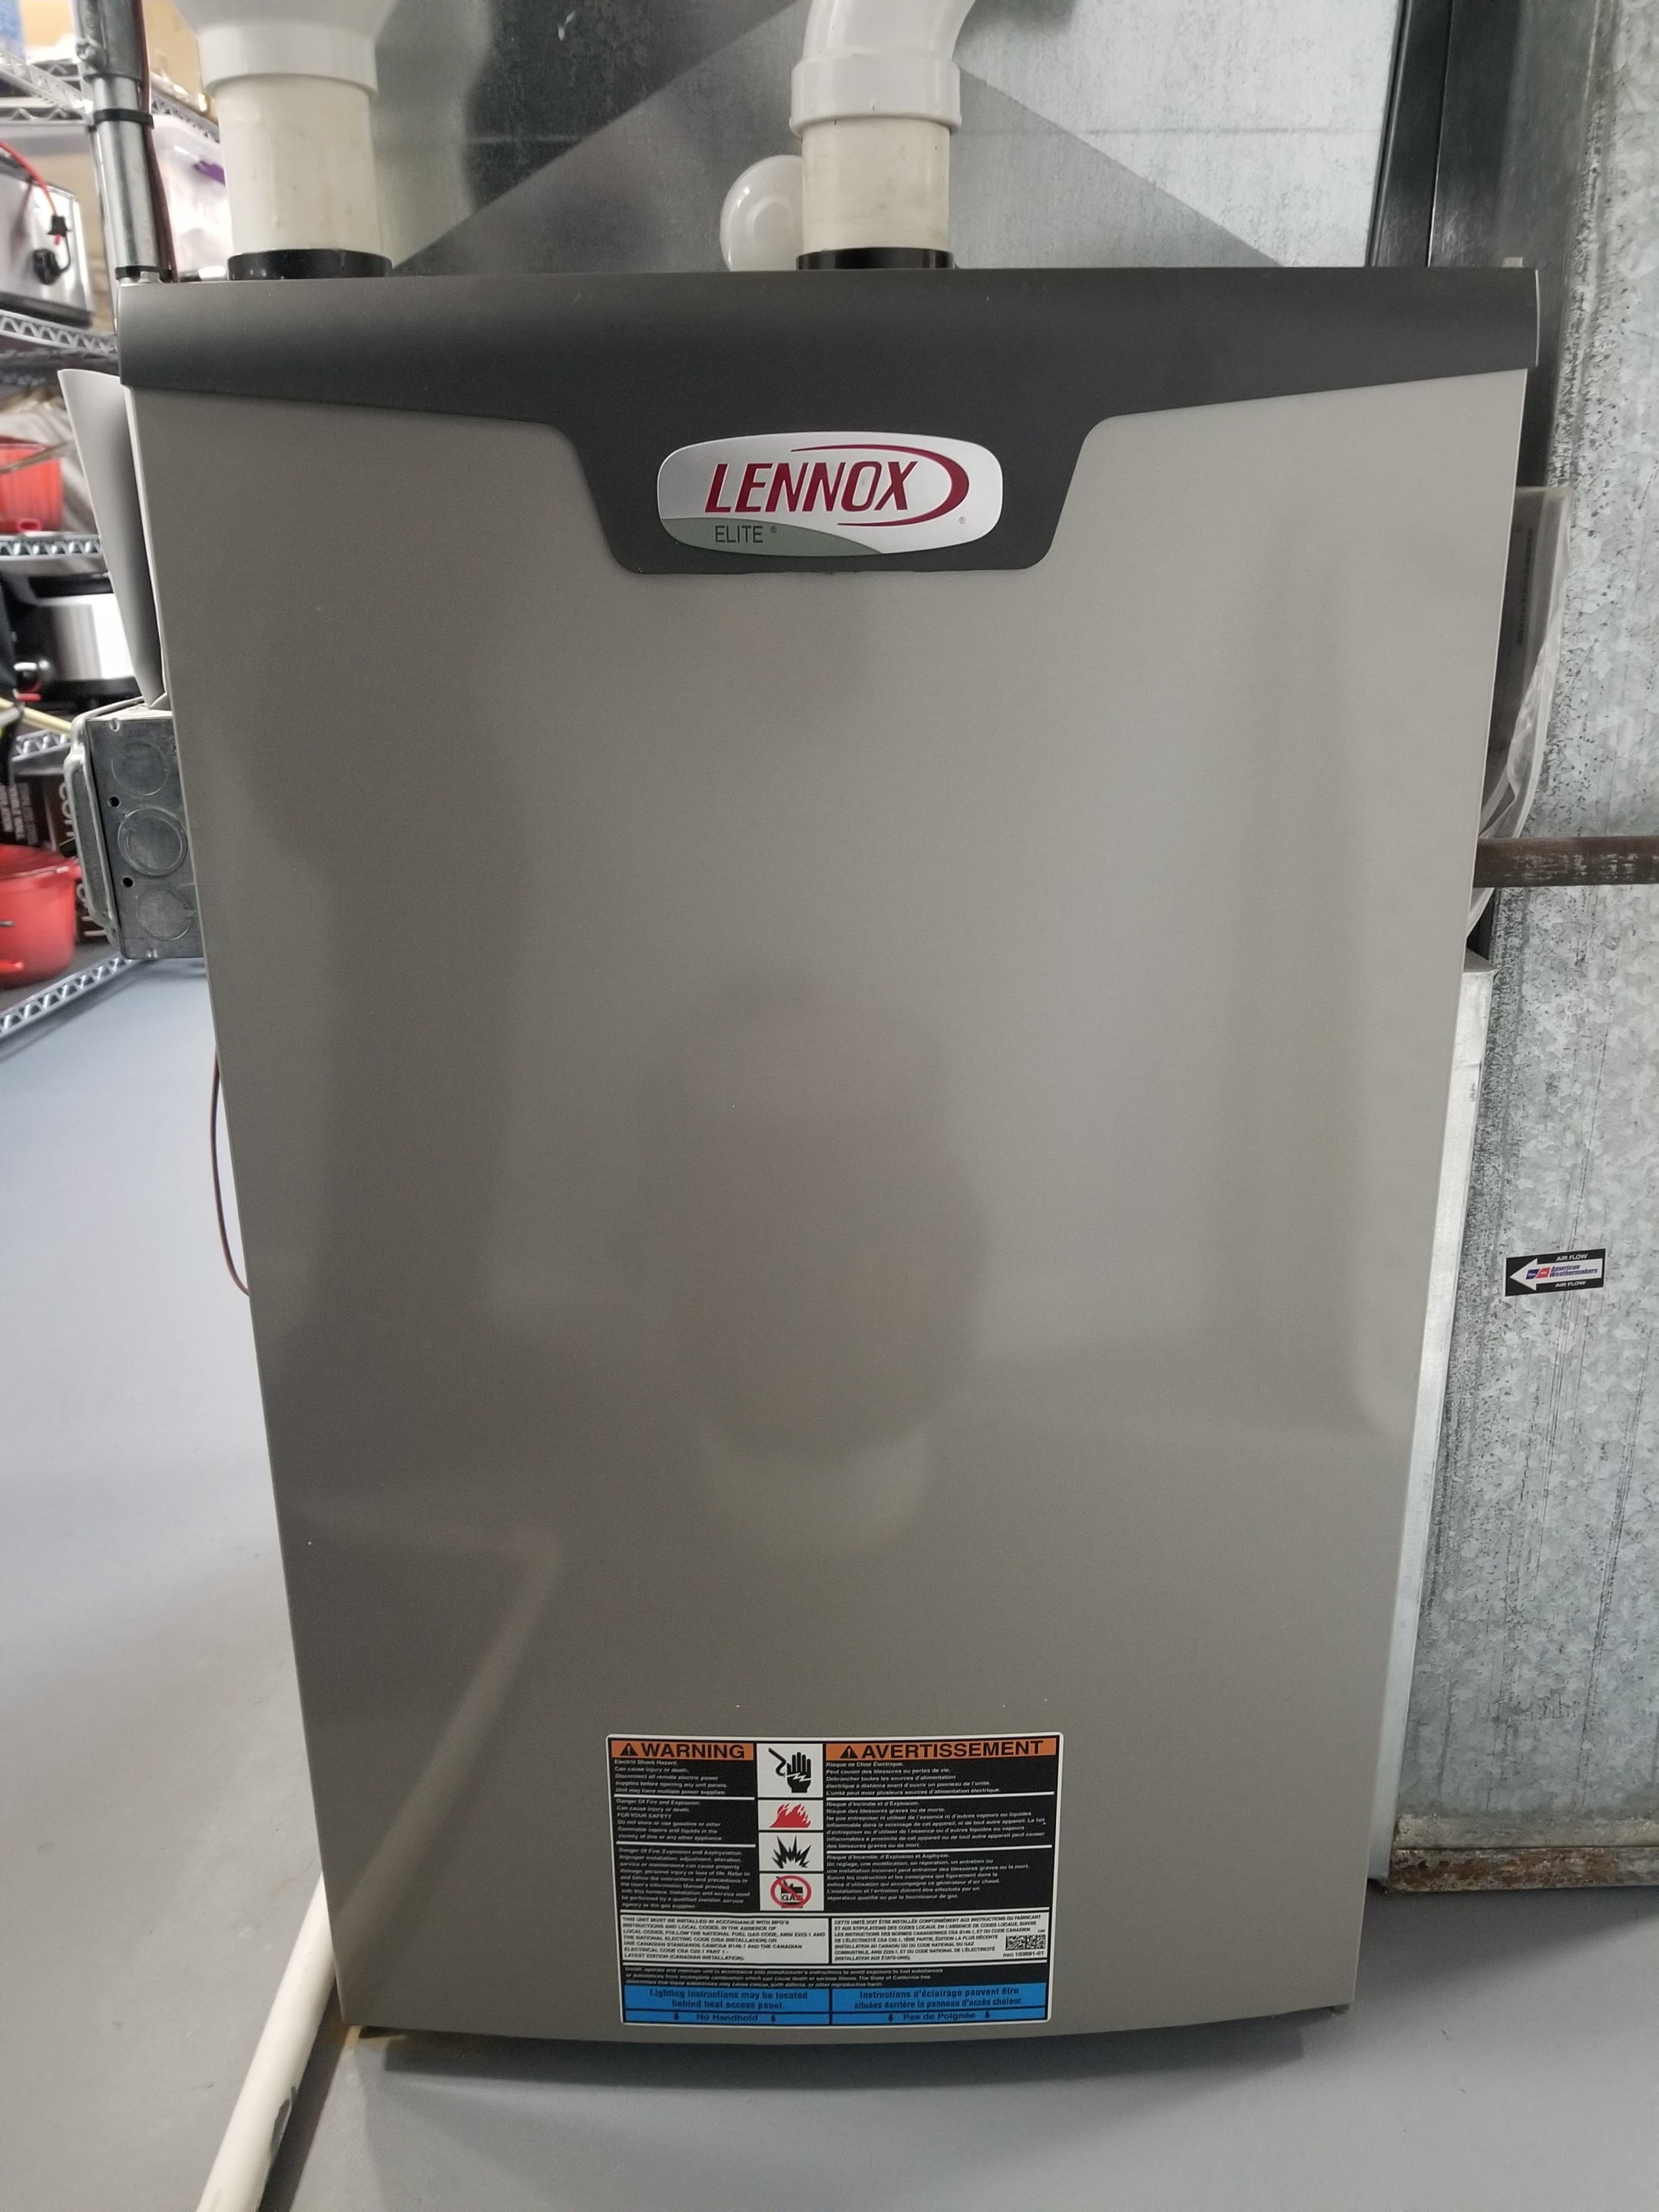 Repaired the Lennox furnace and made adjustments to improve the overall efficiency and life expectancy of the equipment